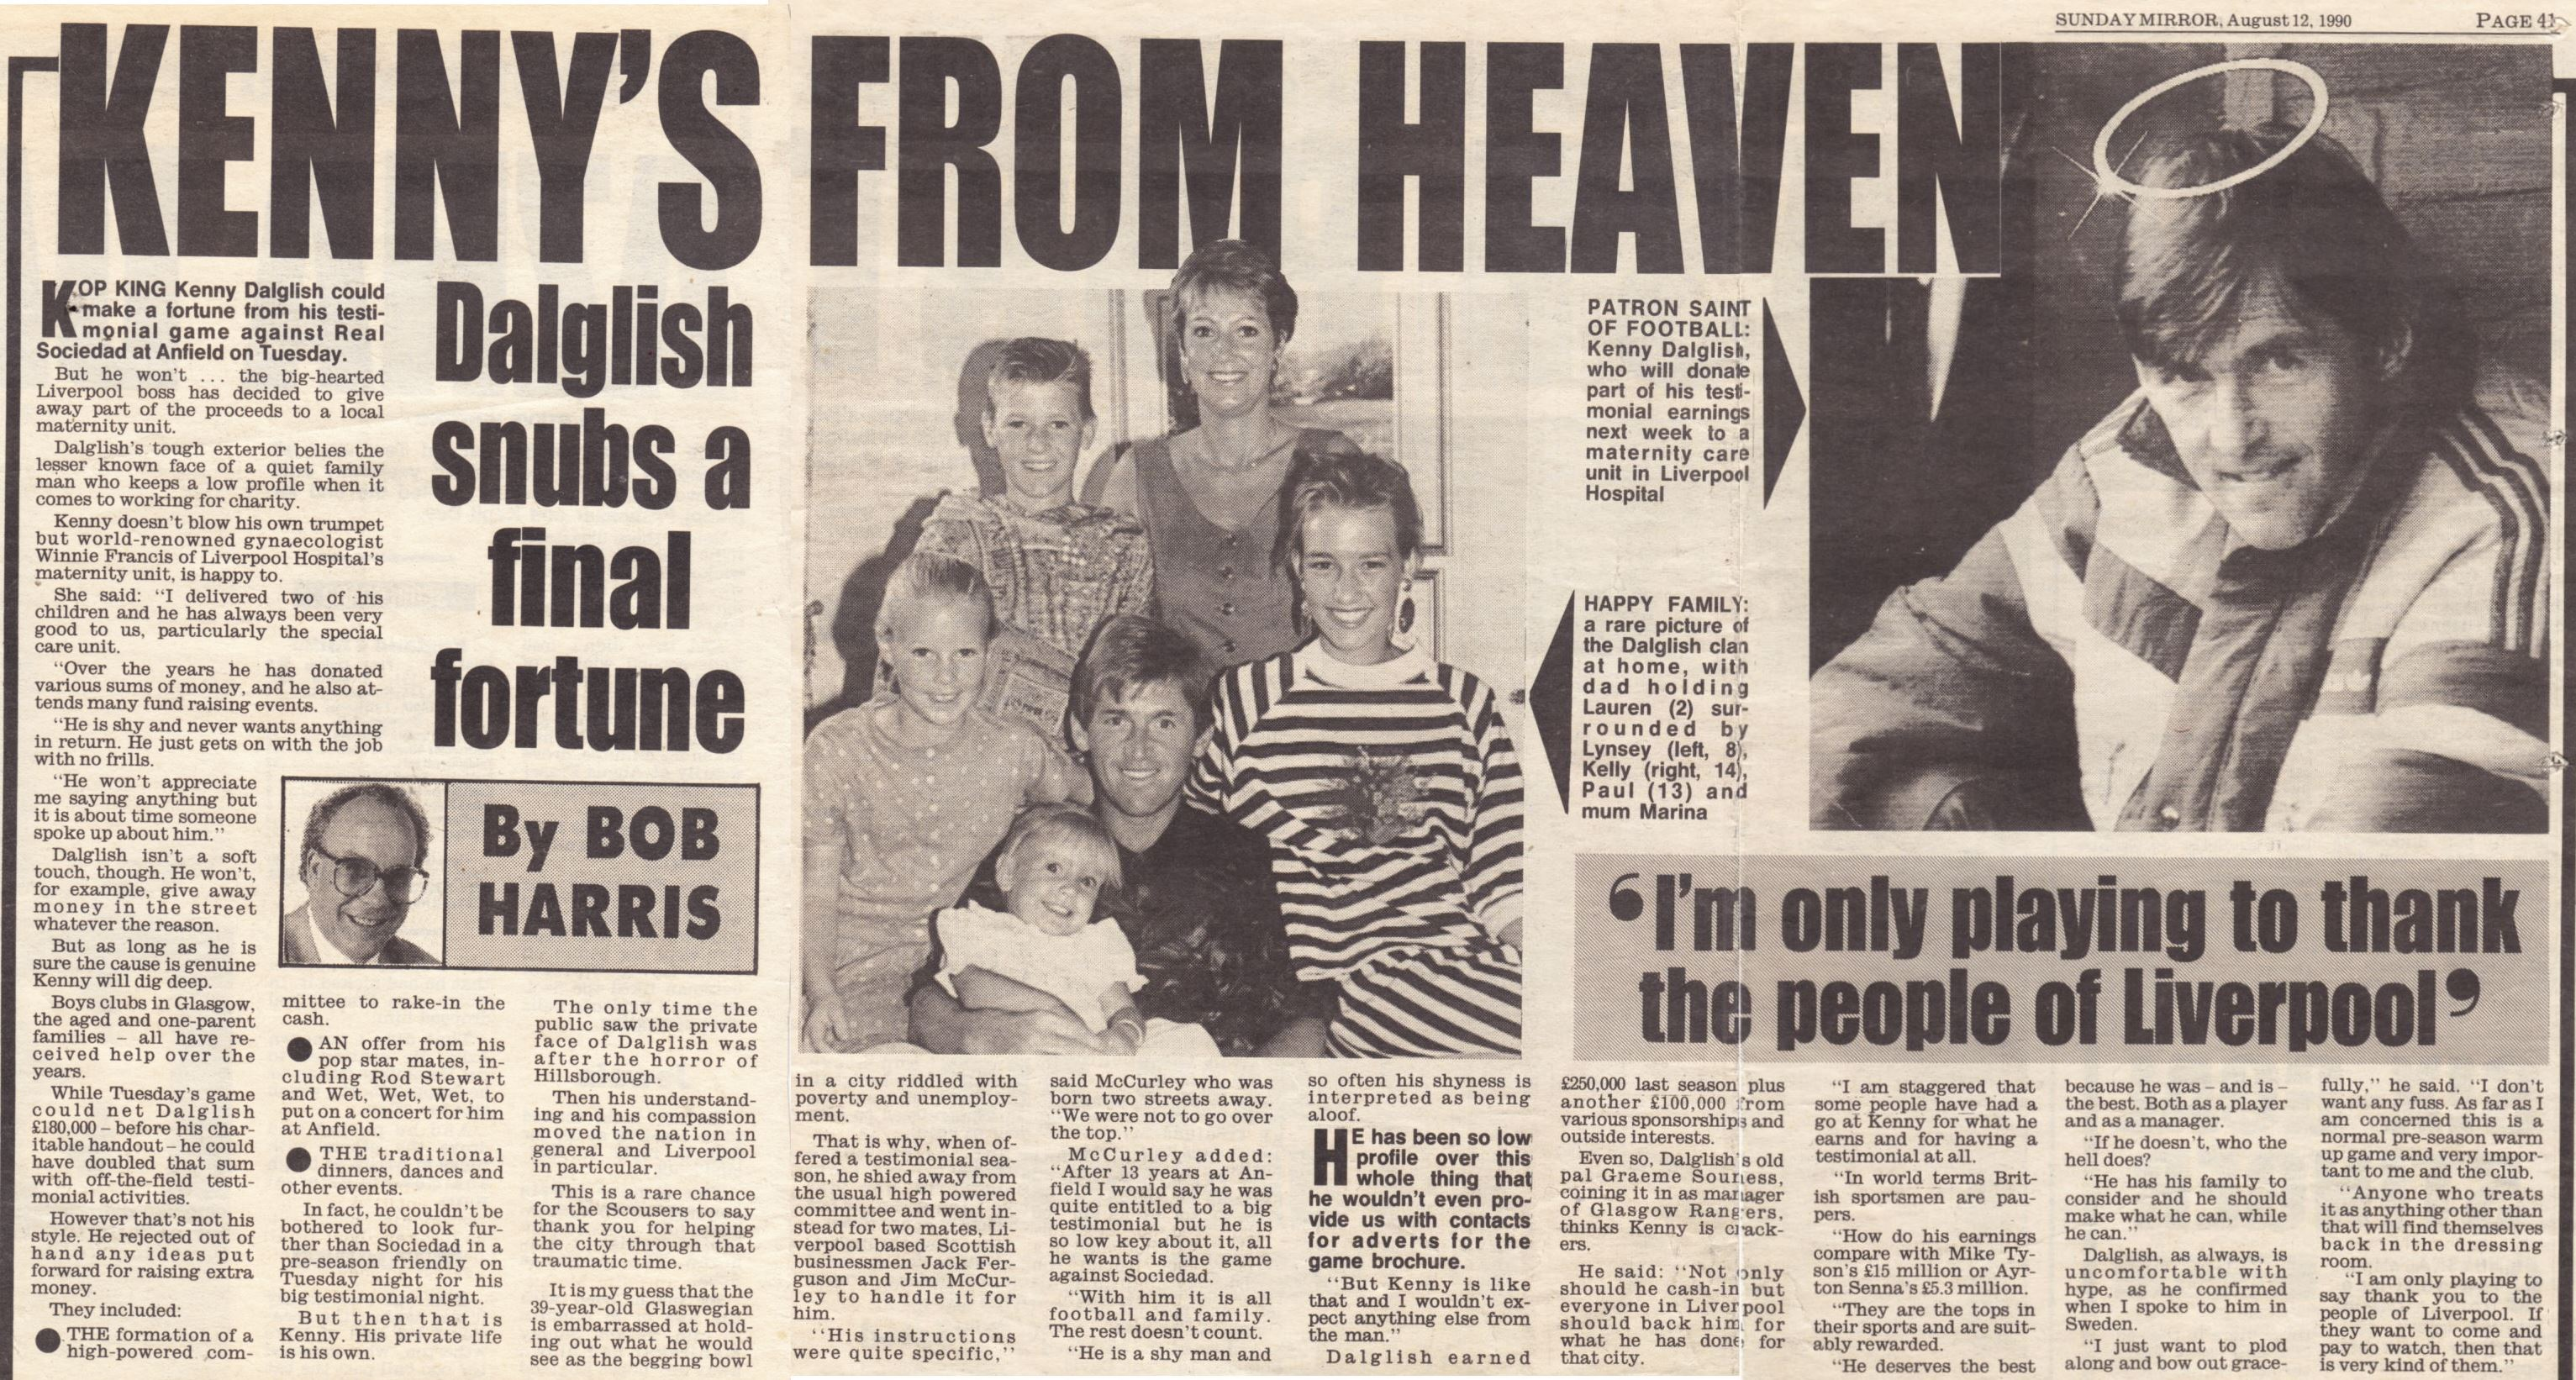 Kenny's from heaven -12 August 1990